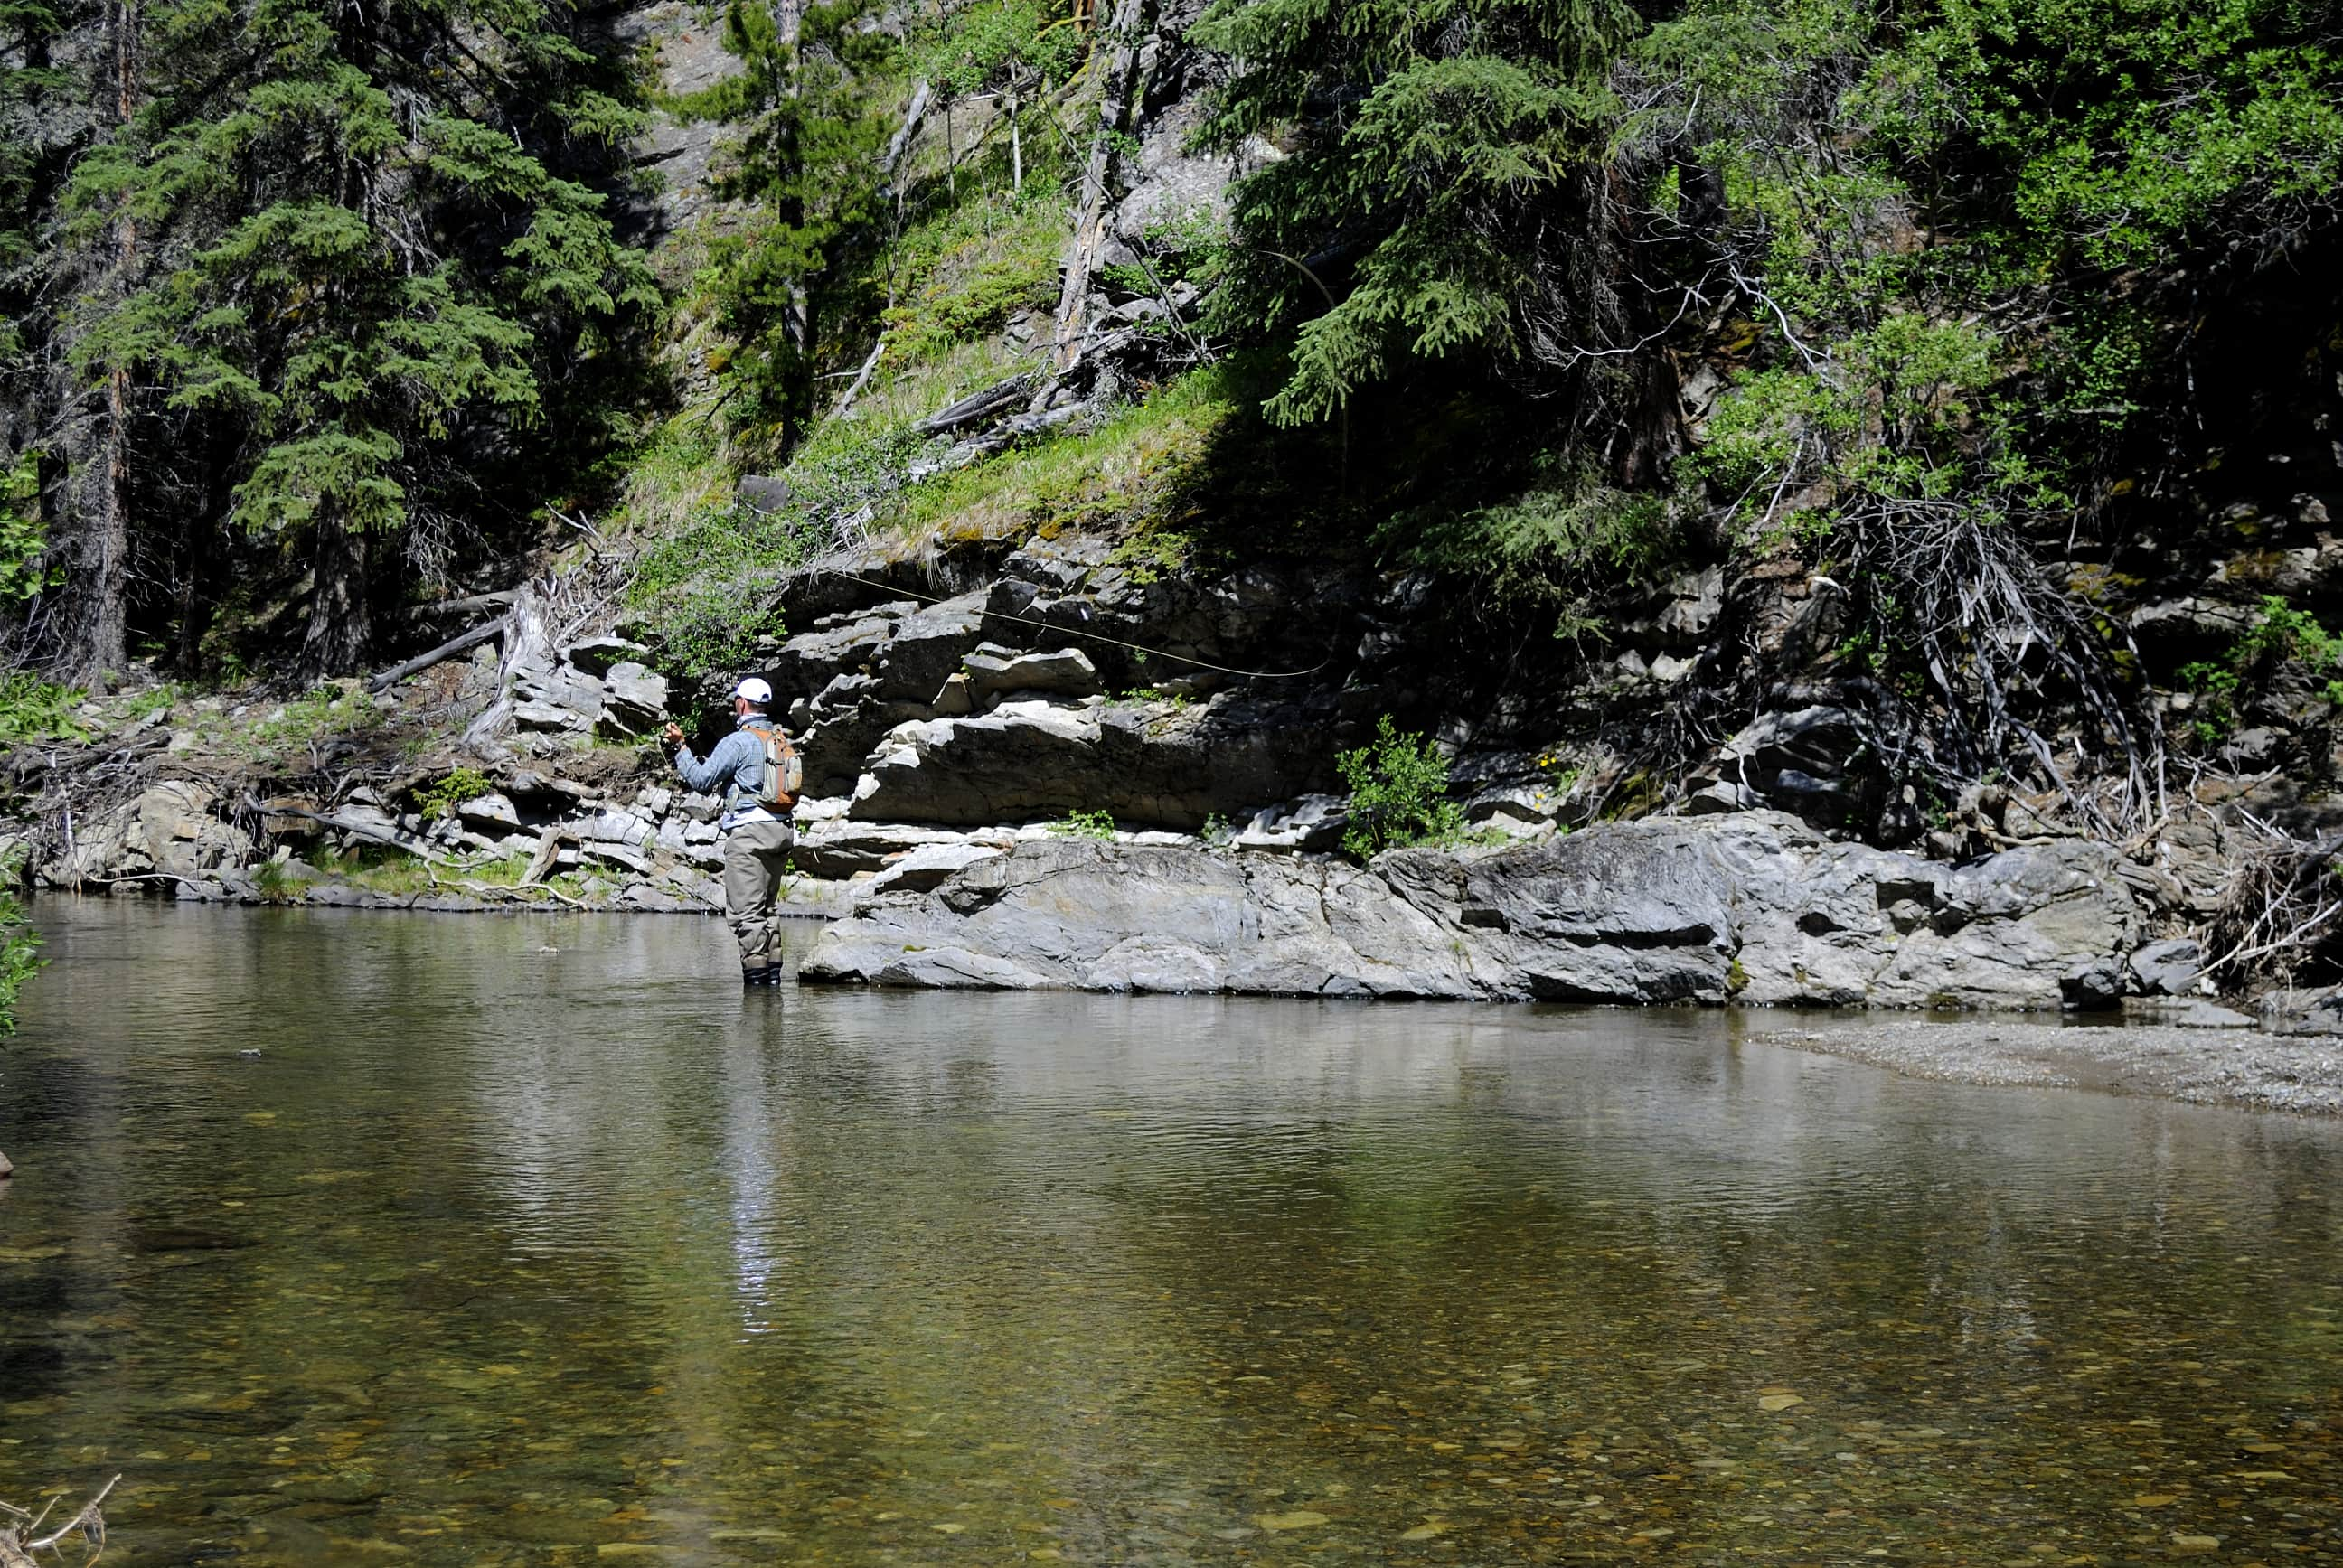 Fishing headwaters for cutthroat trout- head clearing stuff